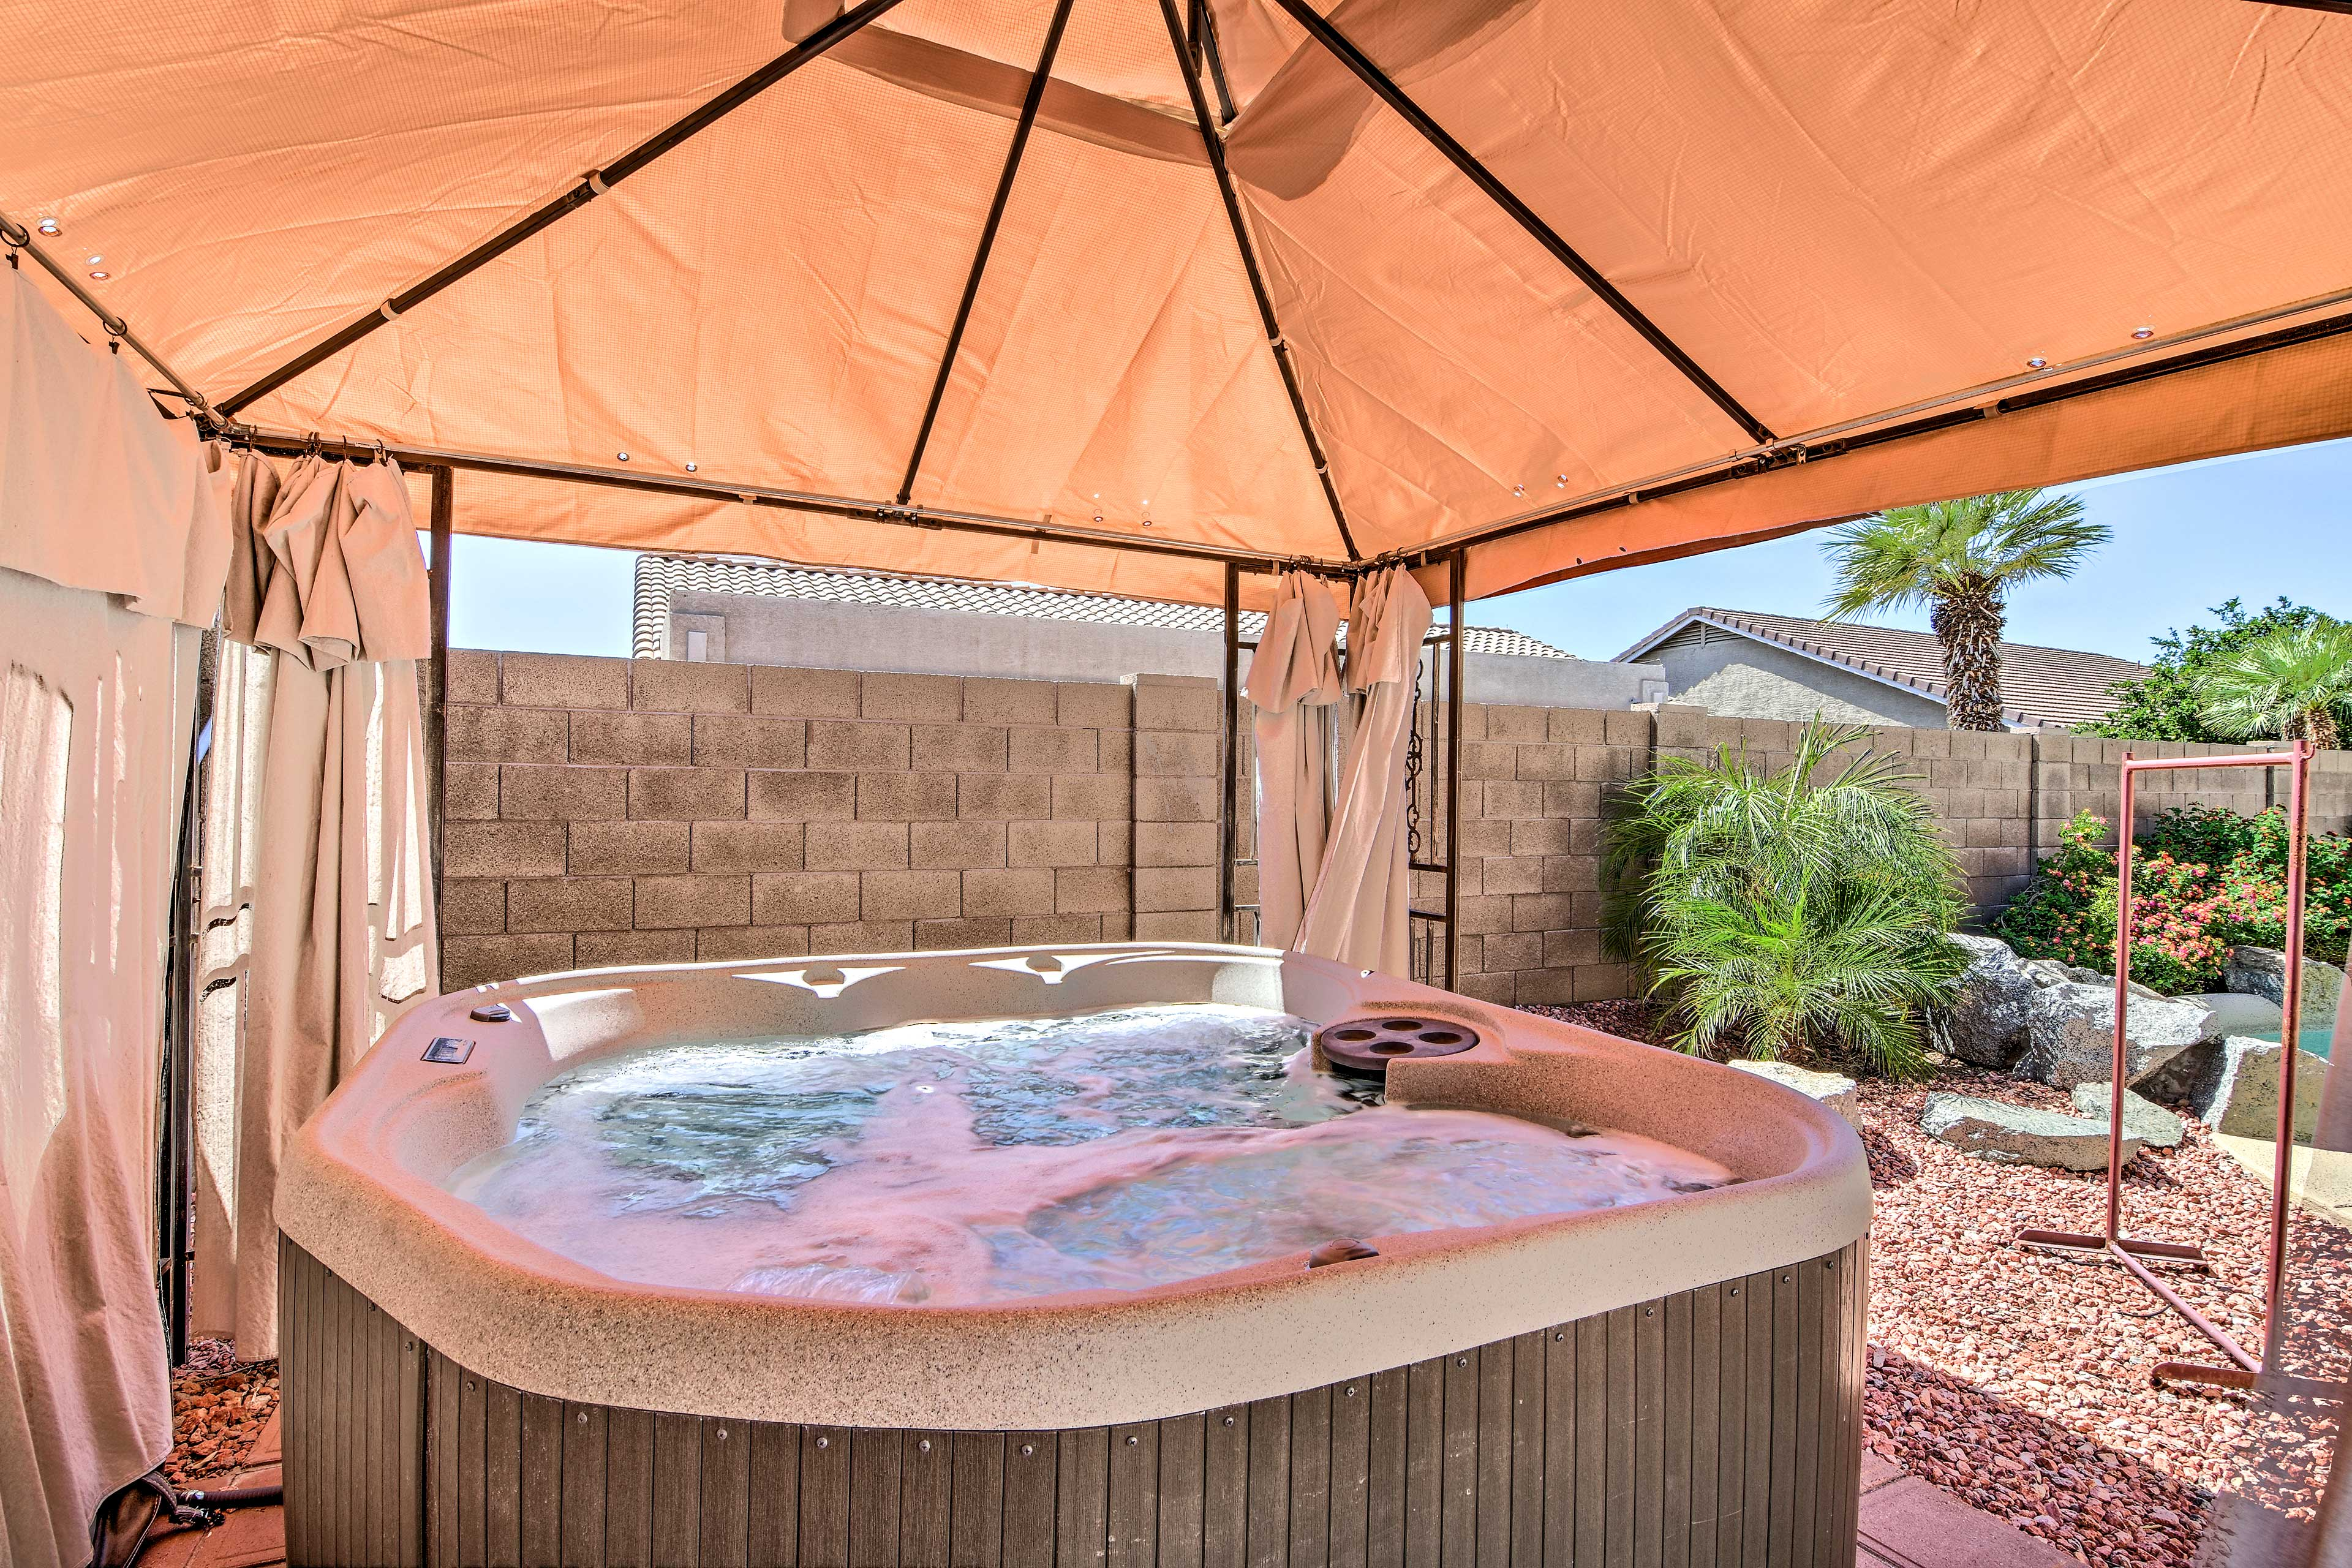 Soak away all your worries in the hot tub.